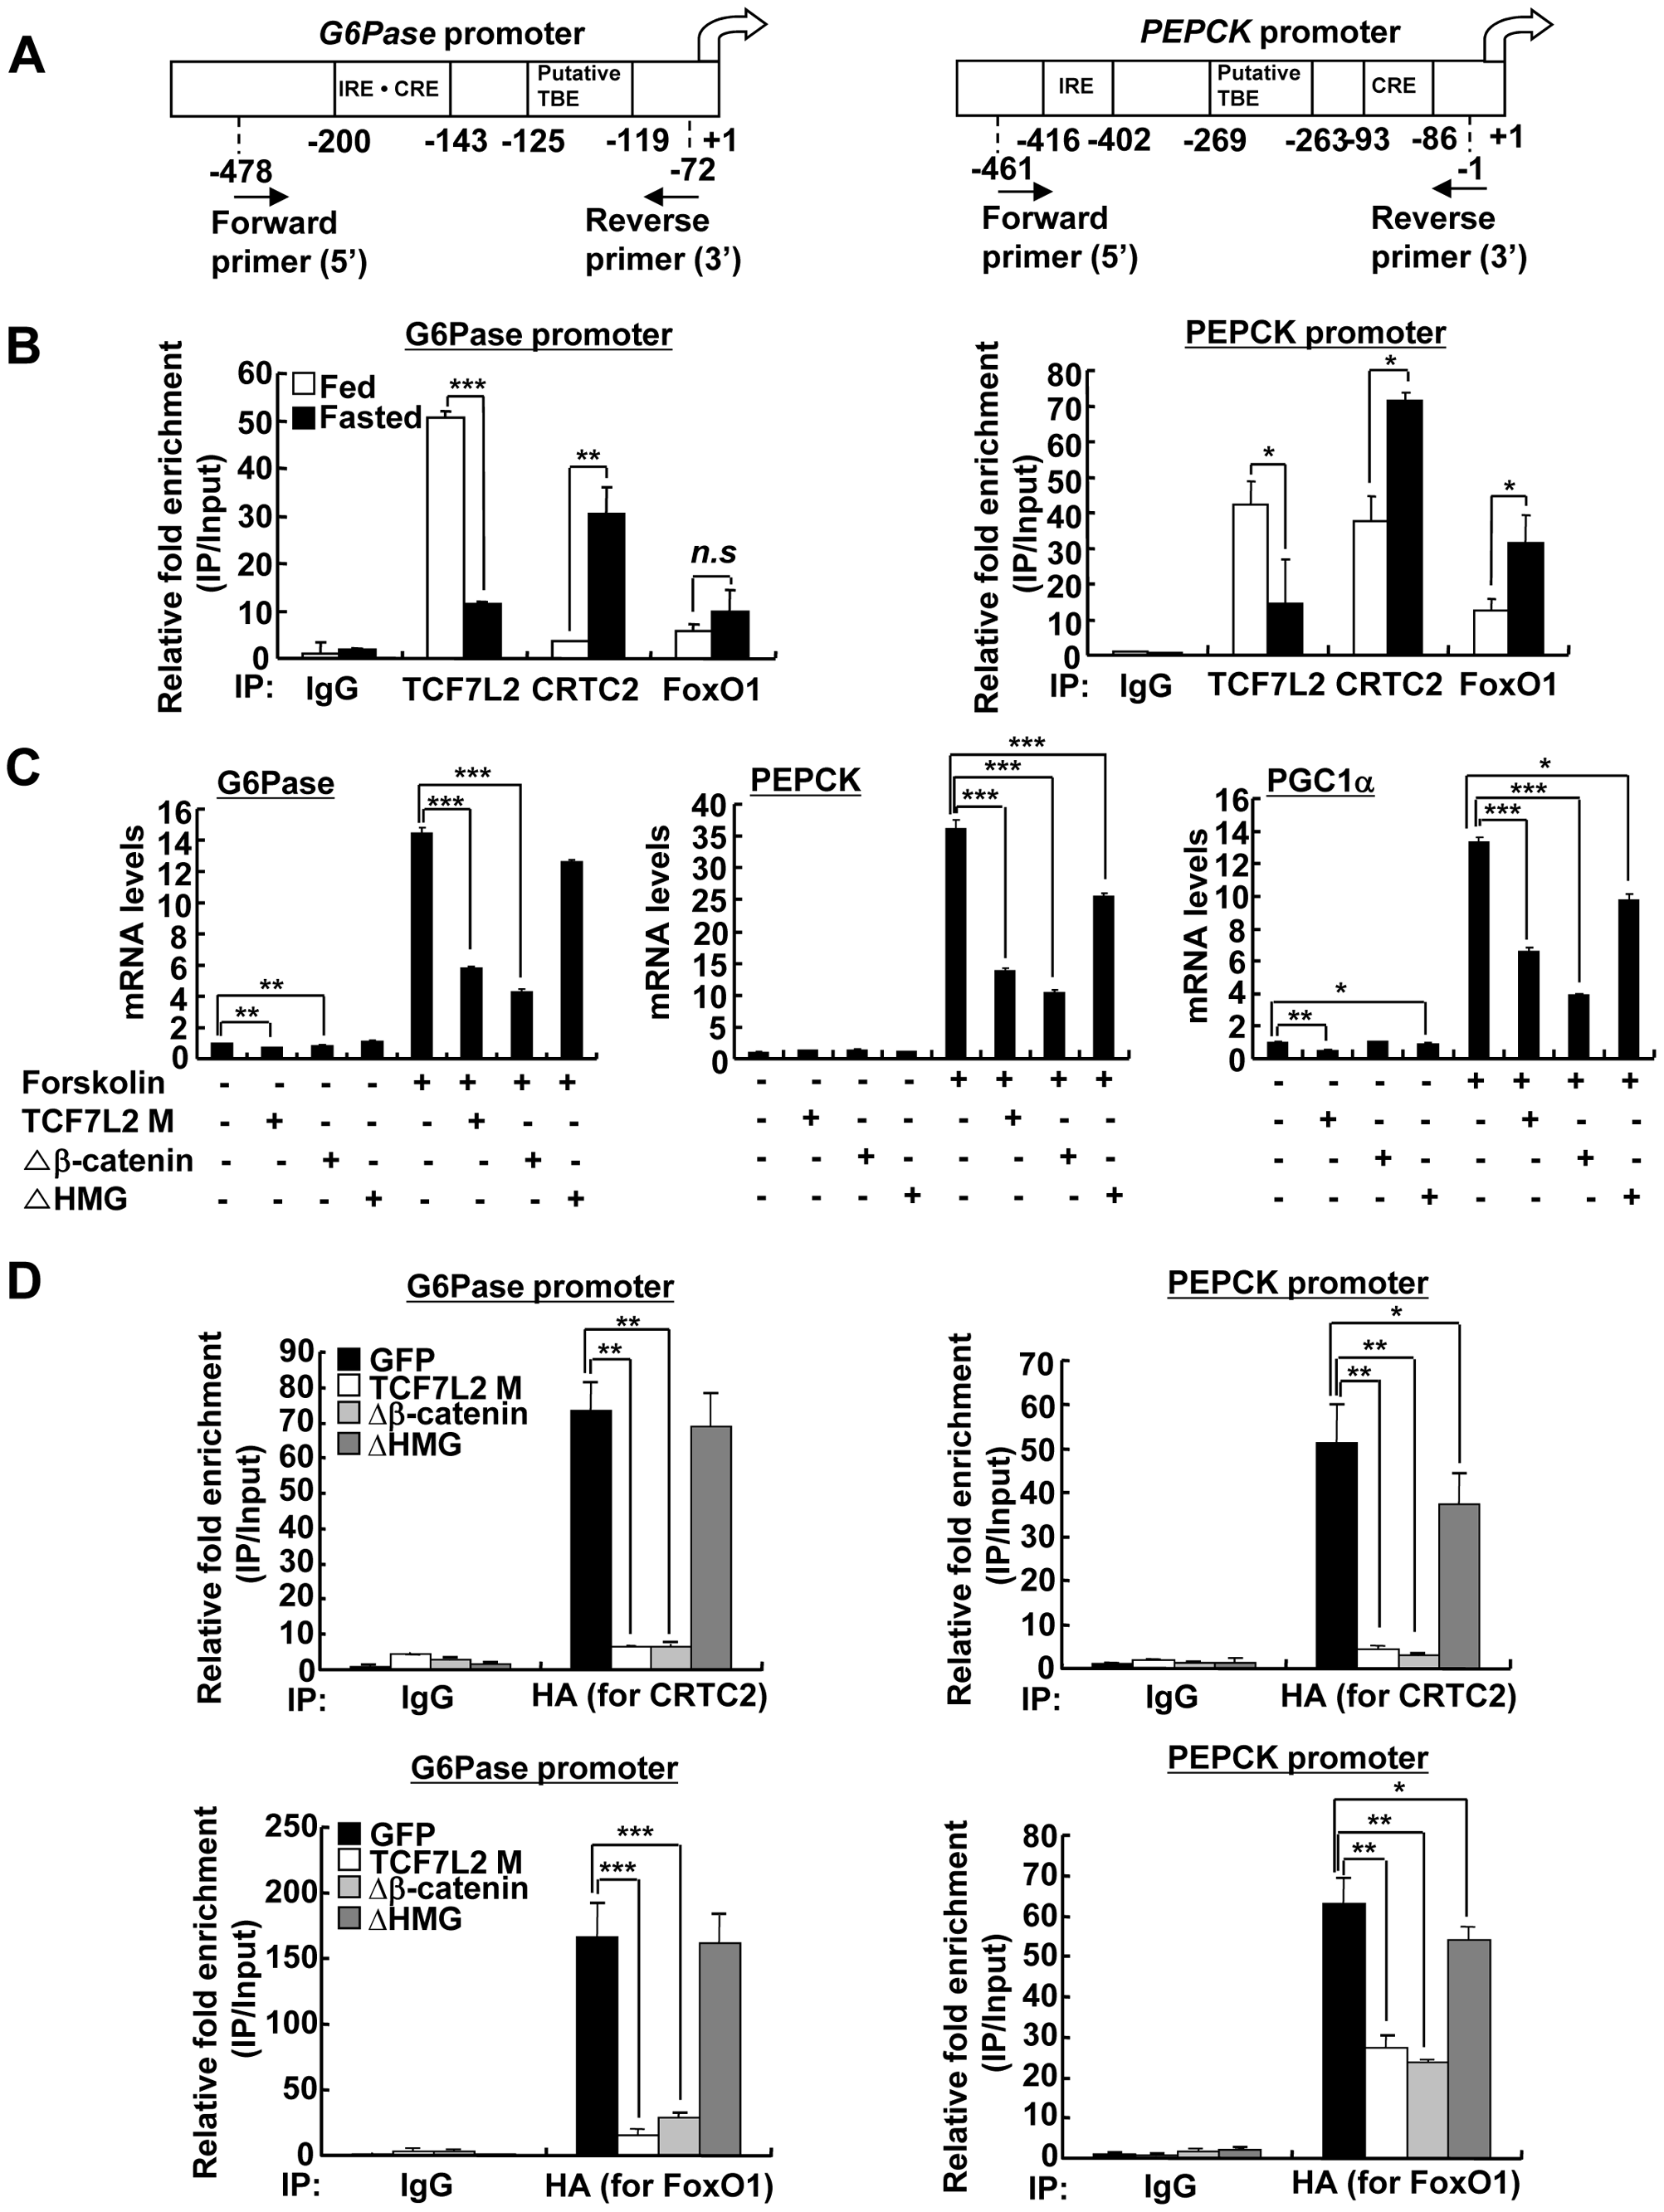 Ectopic expression of TCF7L2 inhibits gluconeogenesis at the transcription level.